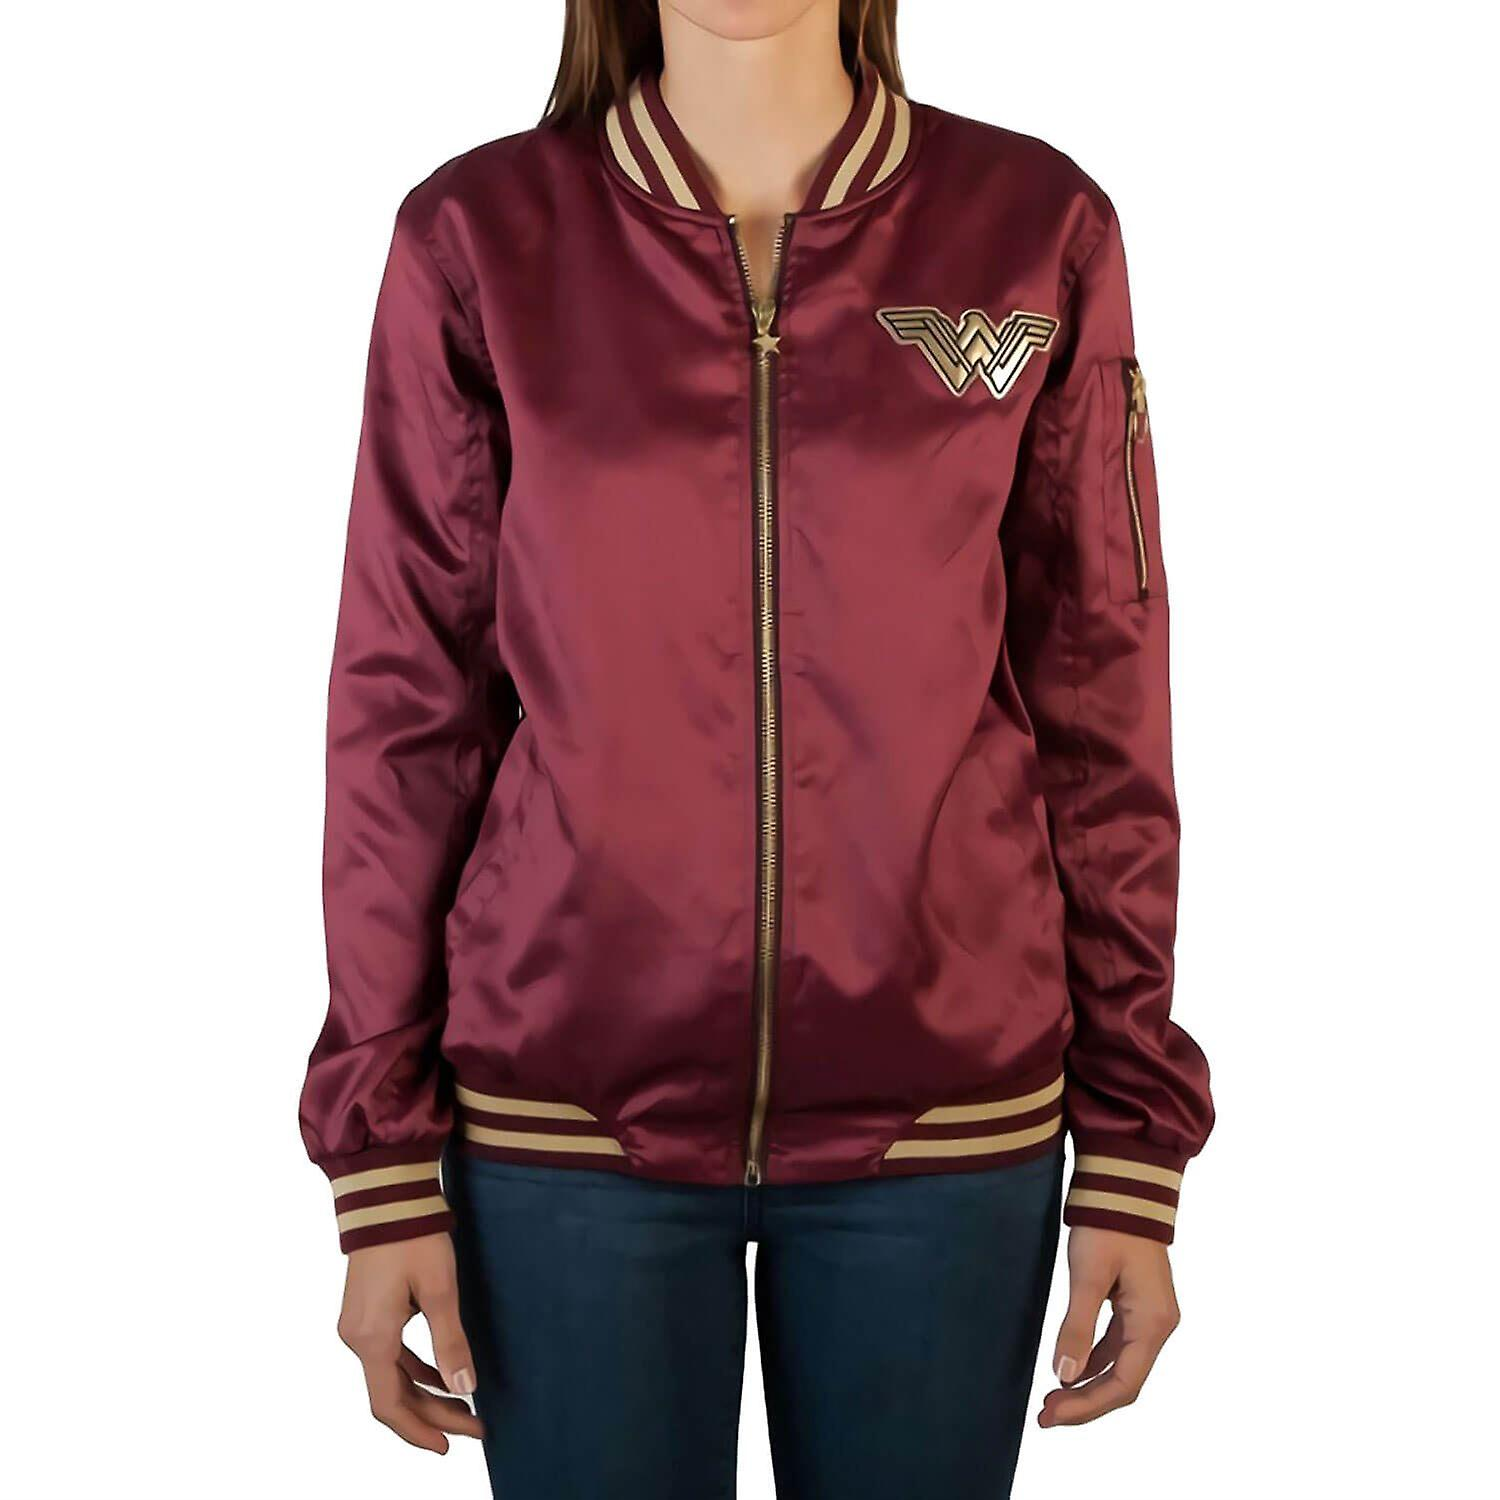 Womens Quick Bomber Jacket